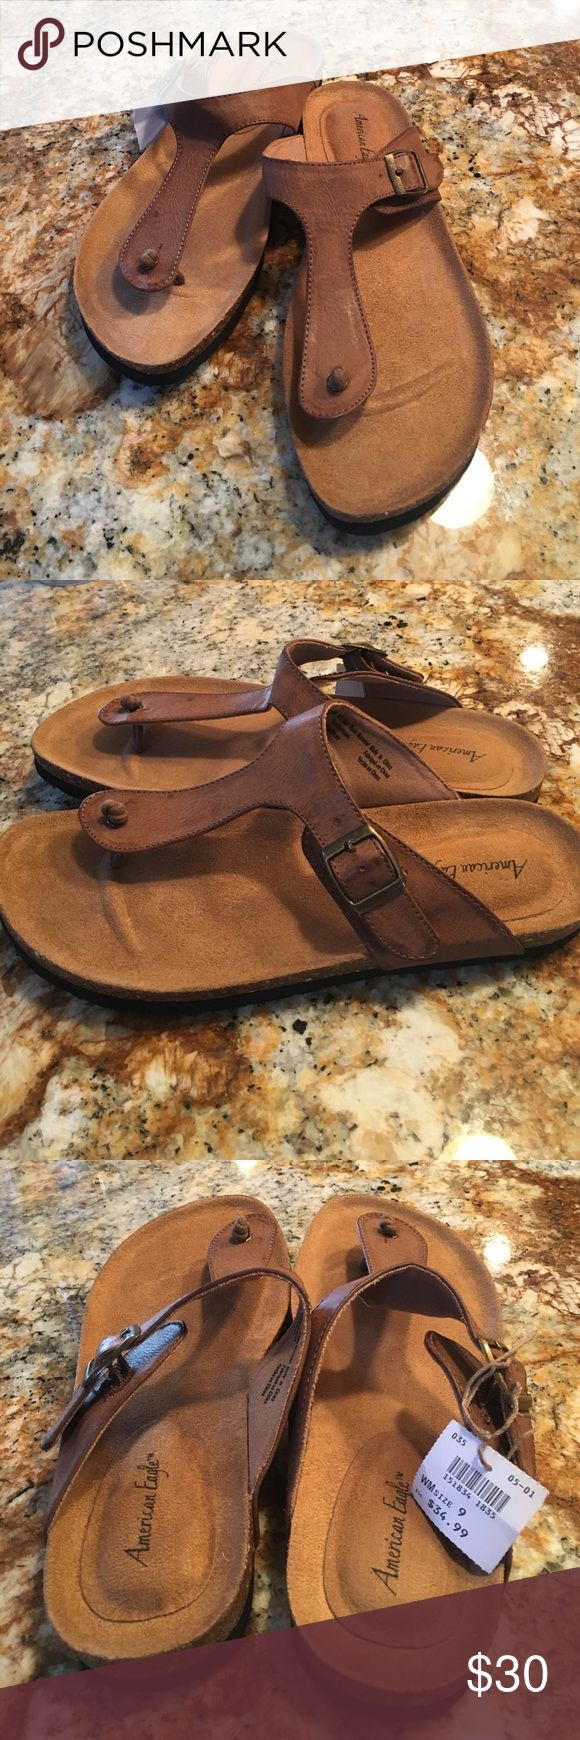 American Eagle NEW Sandals American Eagle NEW brown comfy sandals.  All man made very soft materials. American Eagle by Payless Shoes Sandals